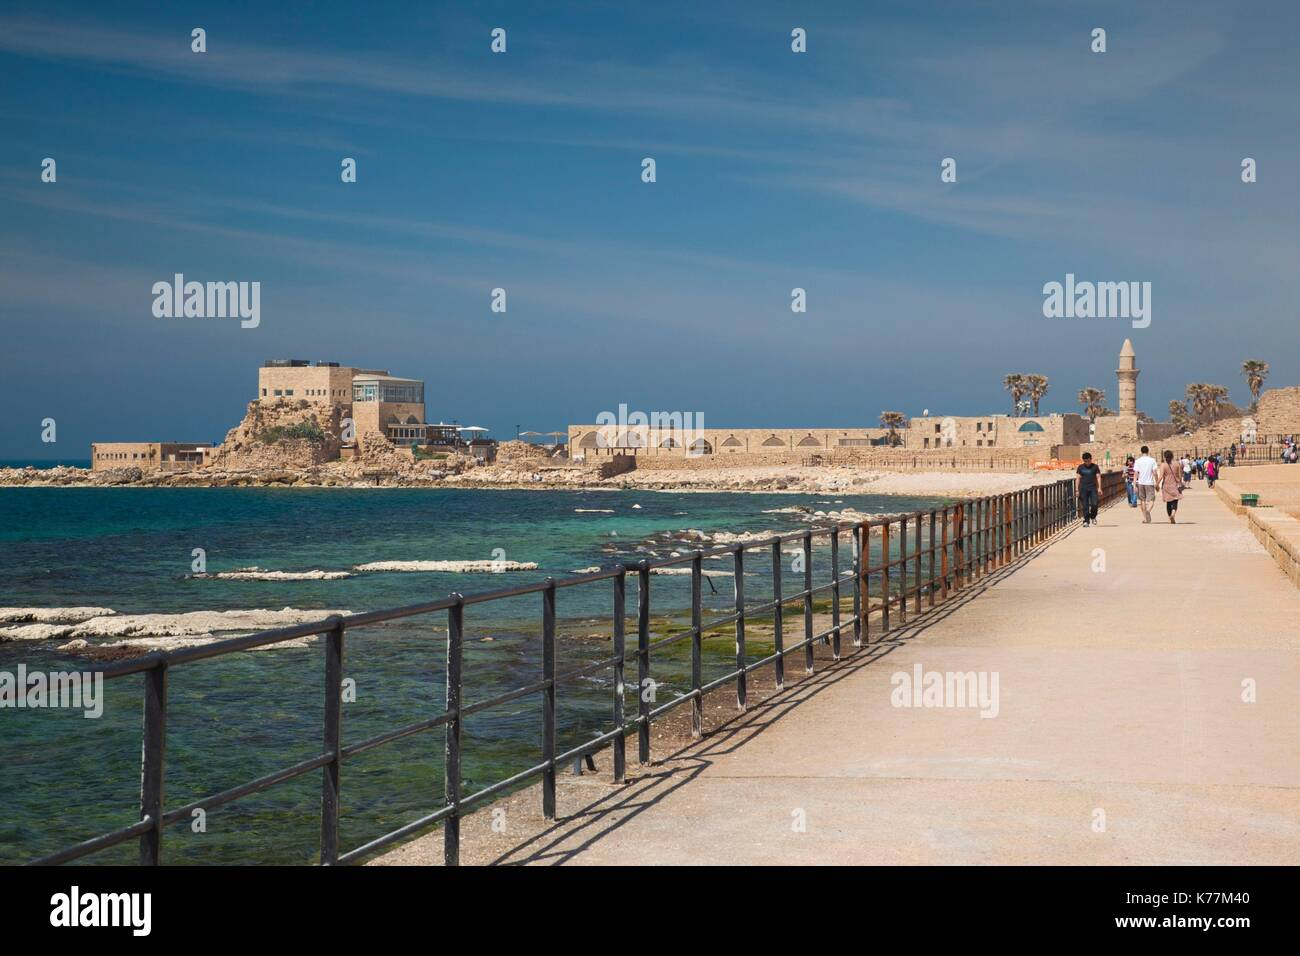 Caesarea port stock photos caesarea port stock images for How much does a fishing license cost in texas